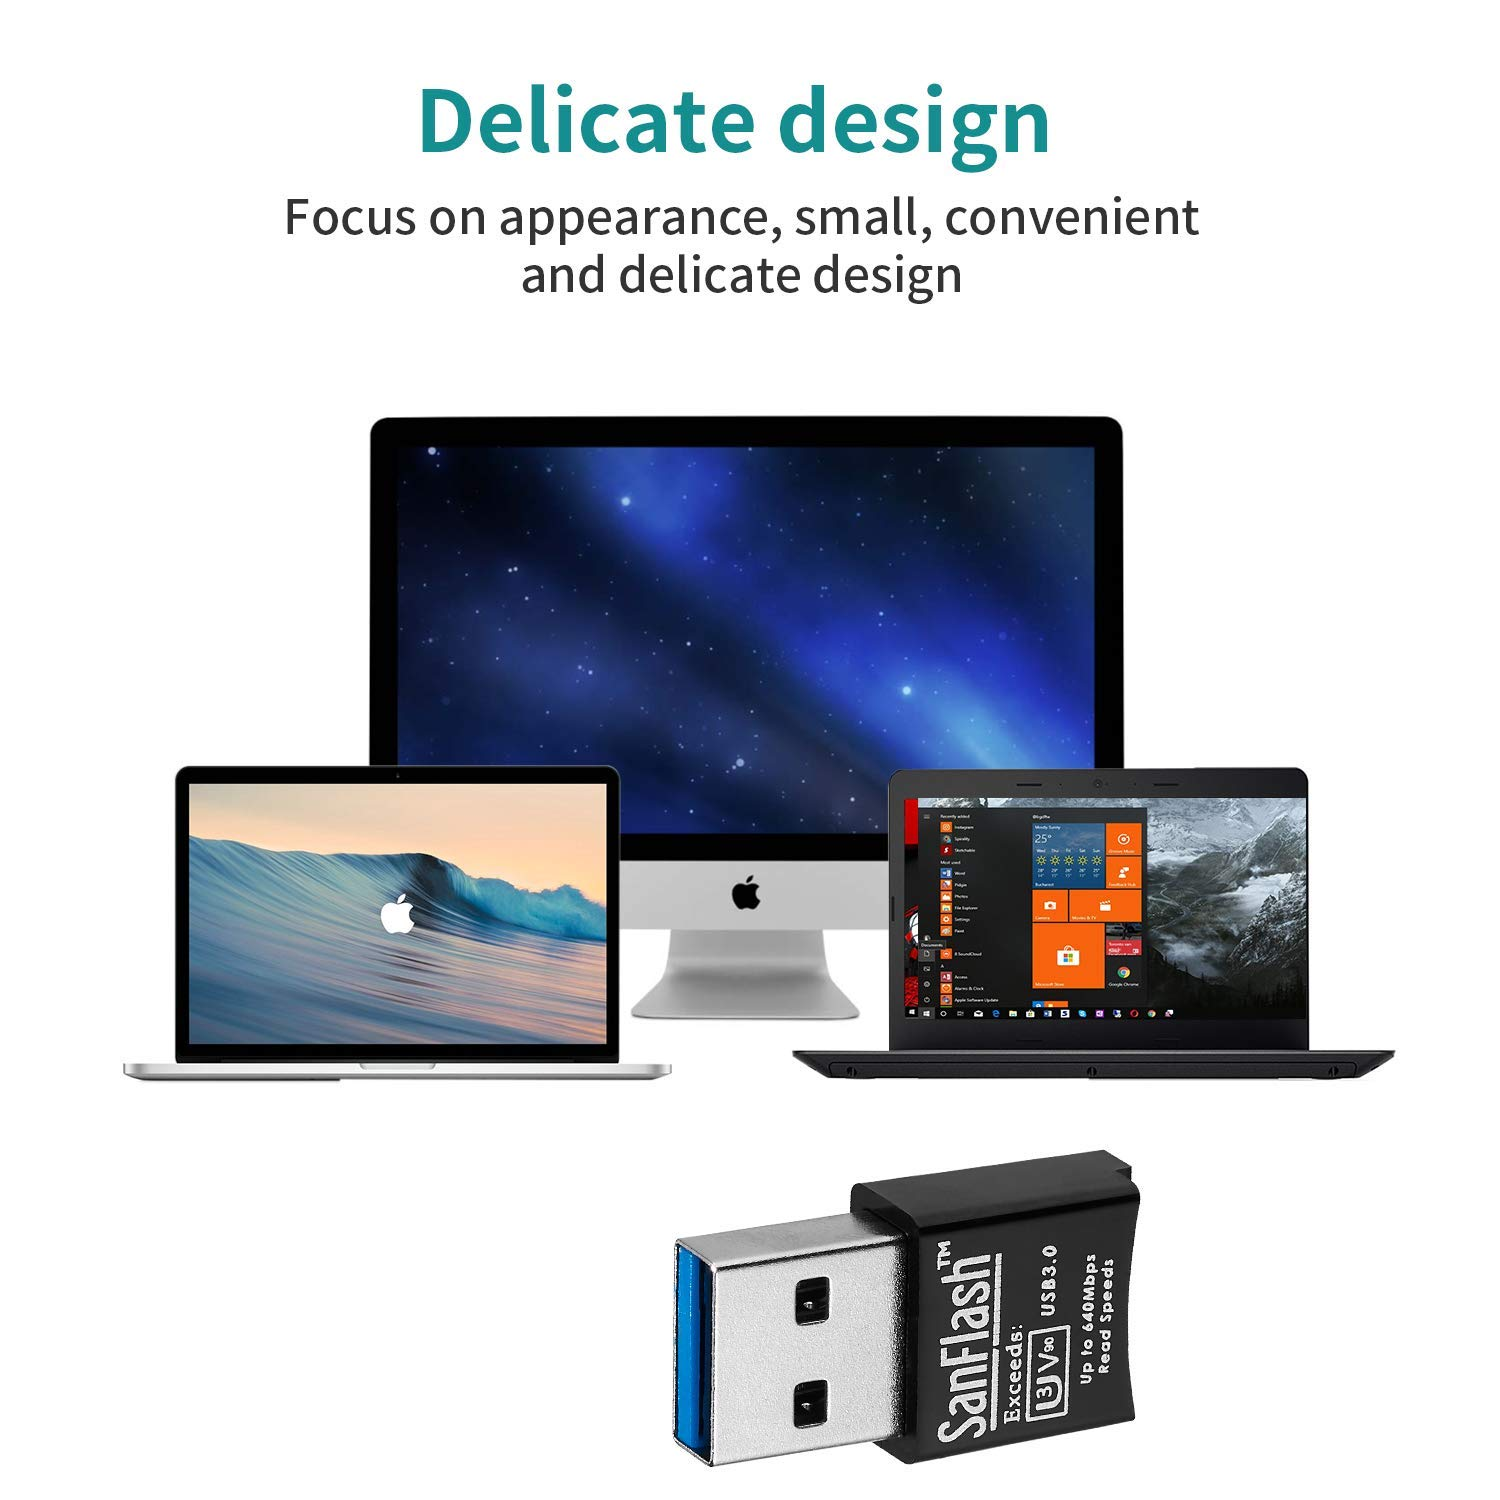 Jumbo Mini Adapter to Directly Read at 5Gbps Your MicroSDHC MicroSDXC Cards SanFlash PRO USB 3.0 Card Reader Works for Karbonn K36